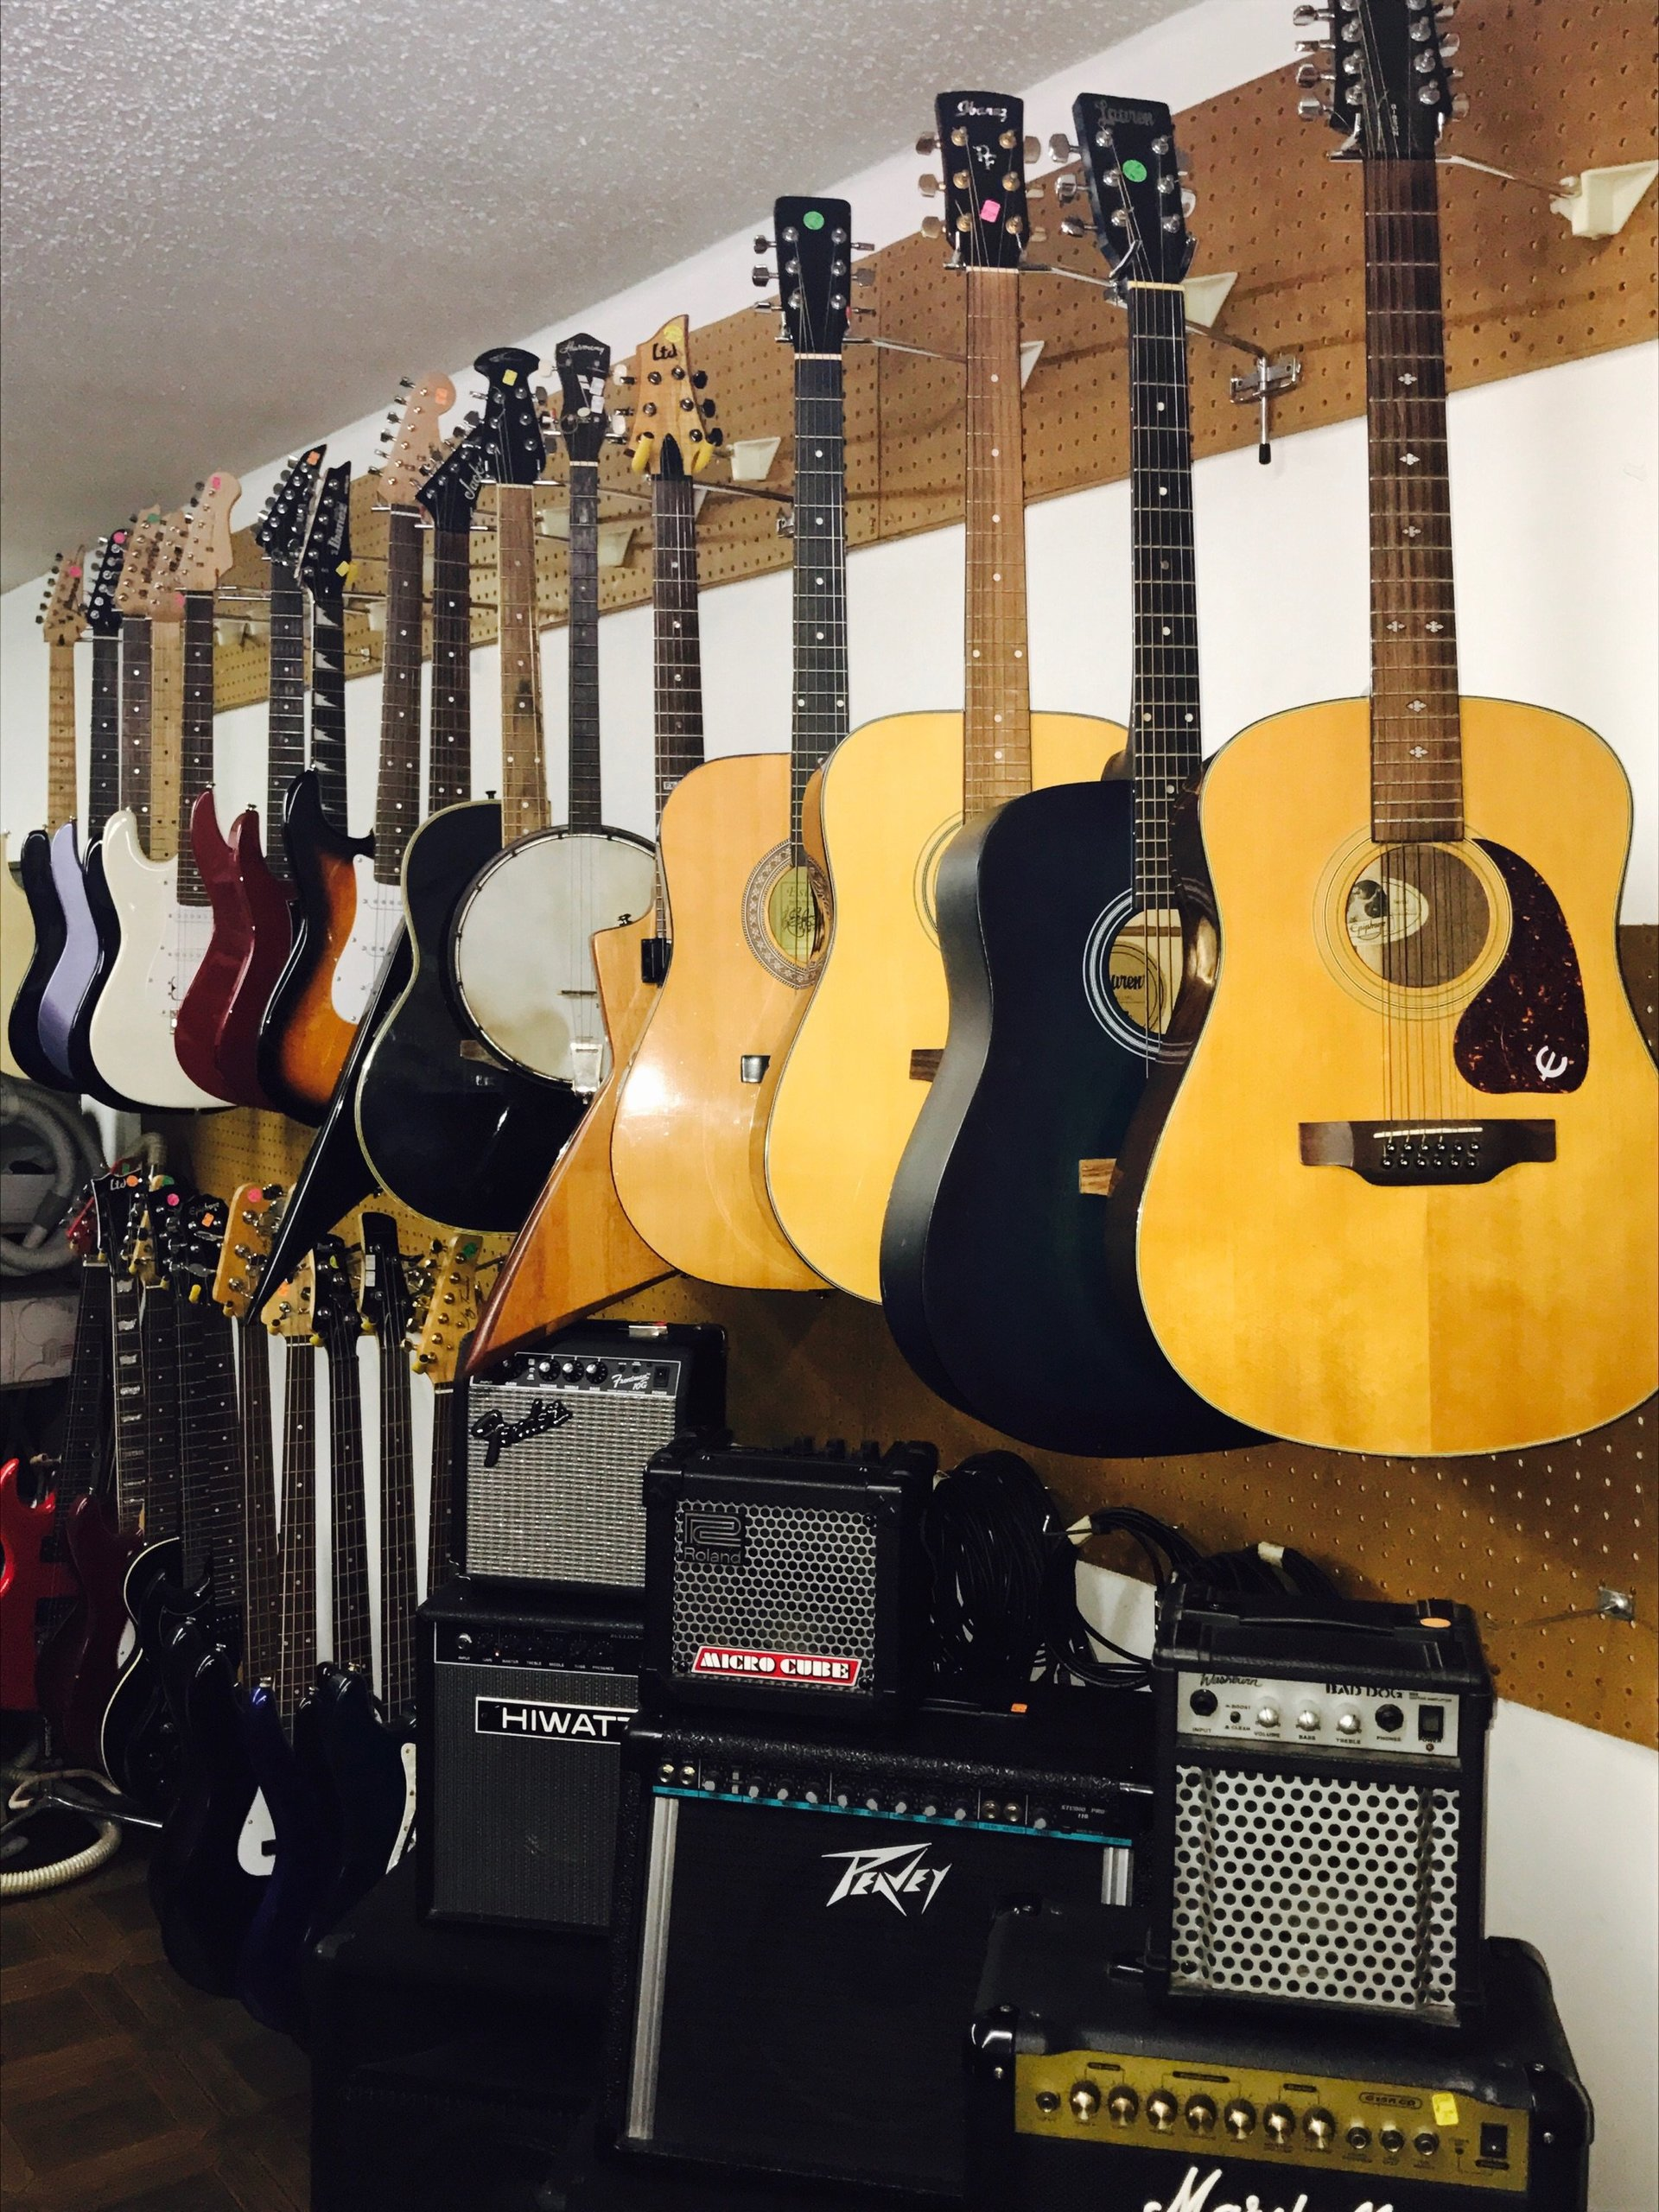 Guitars and amplifiers